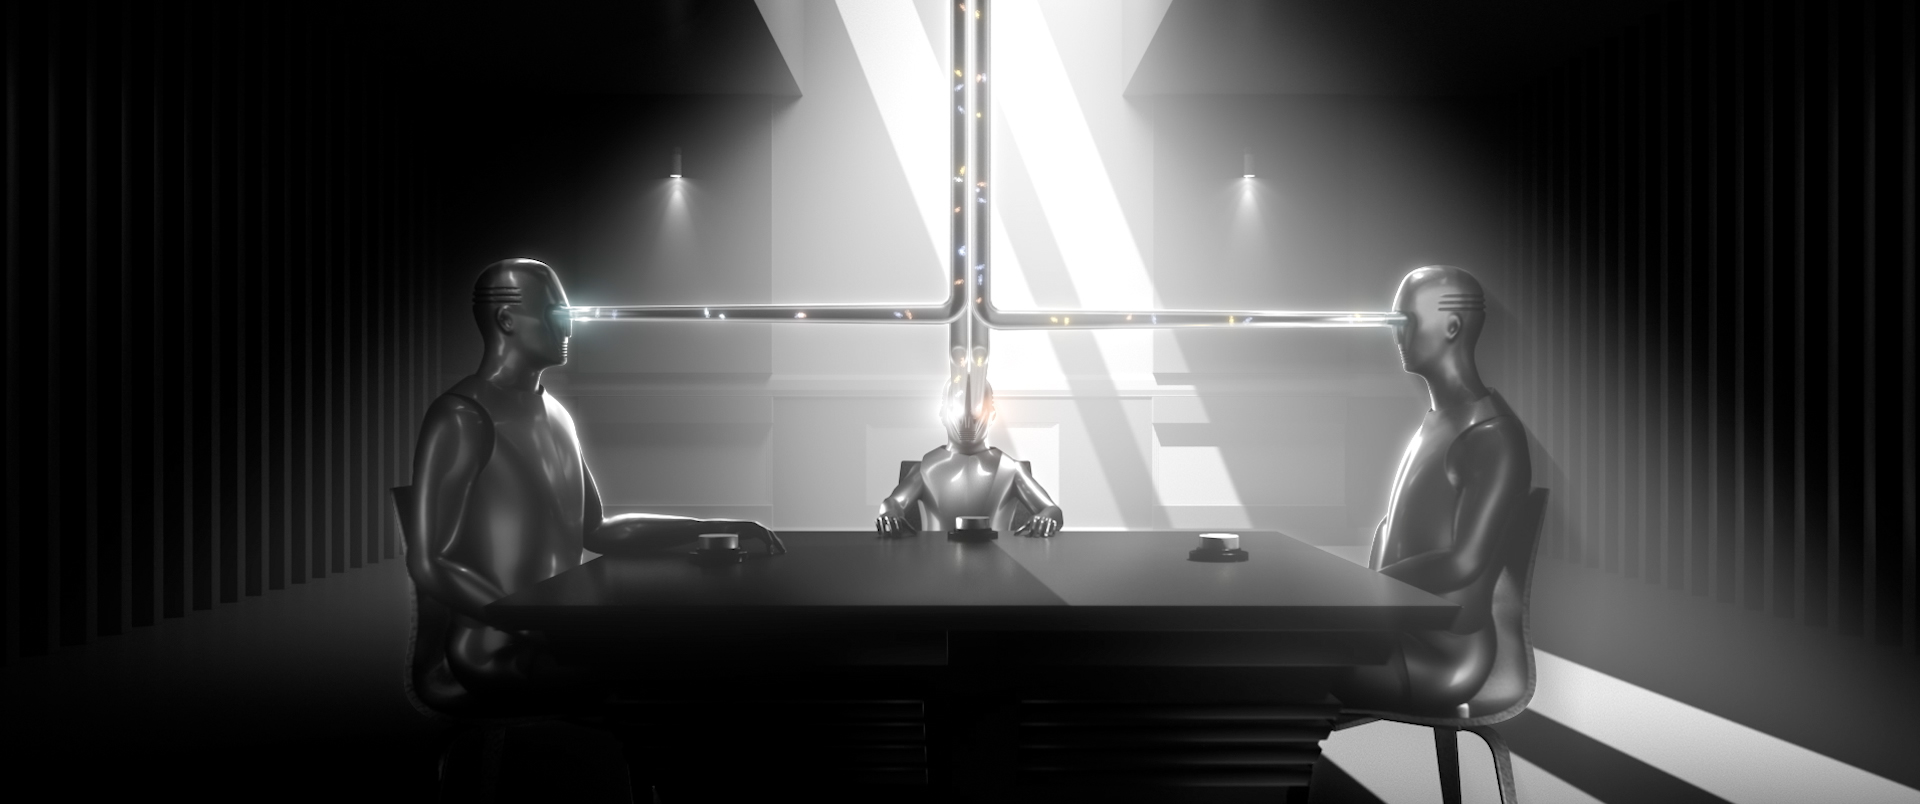 A scene of three robots sitting at a table with lasers coming out of their eyes.